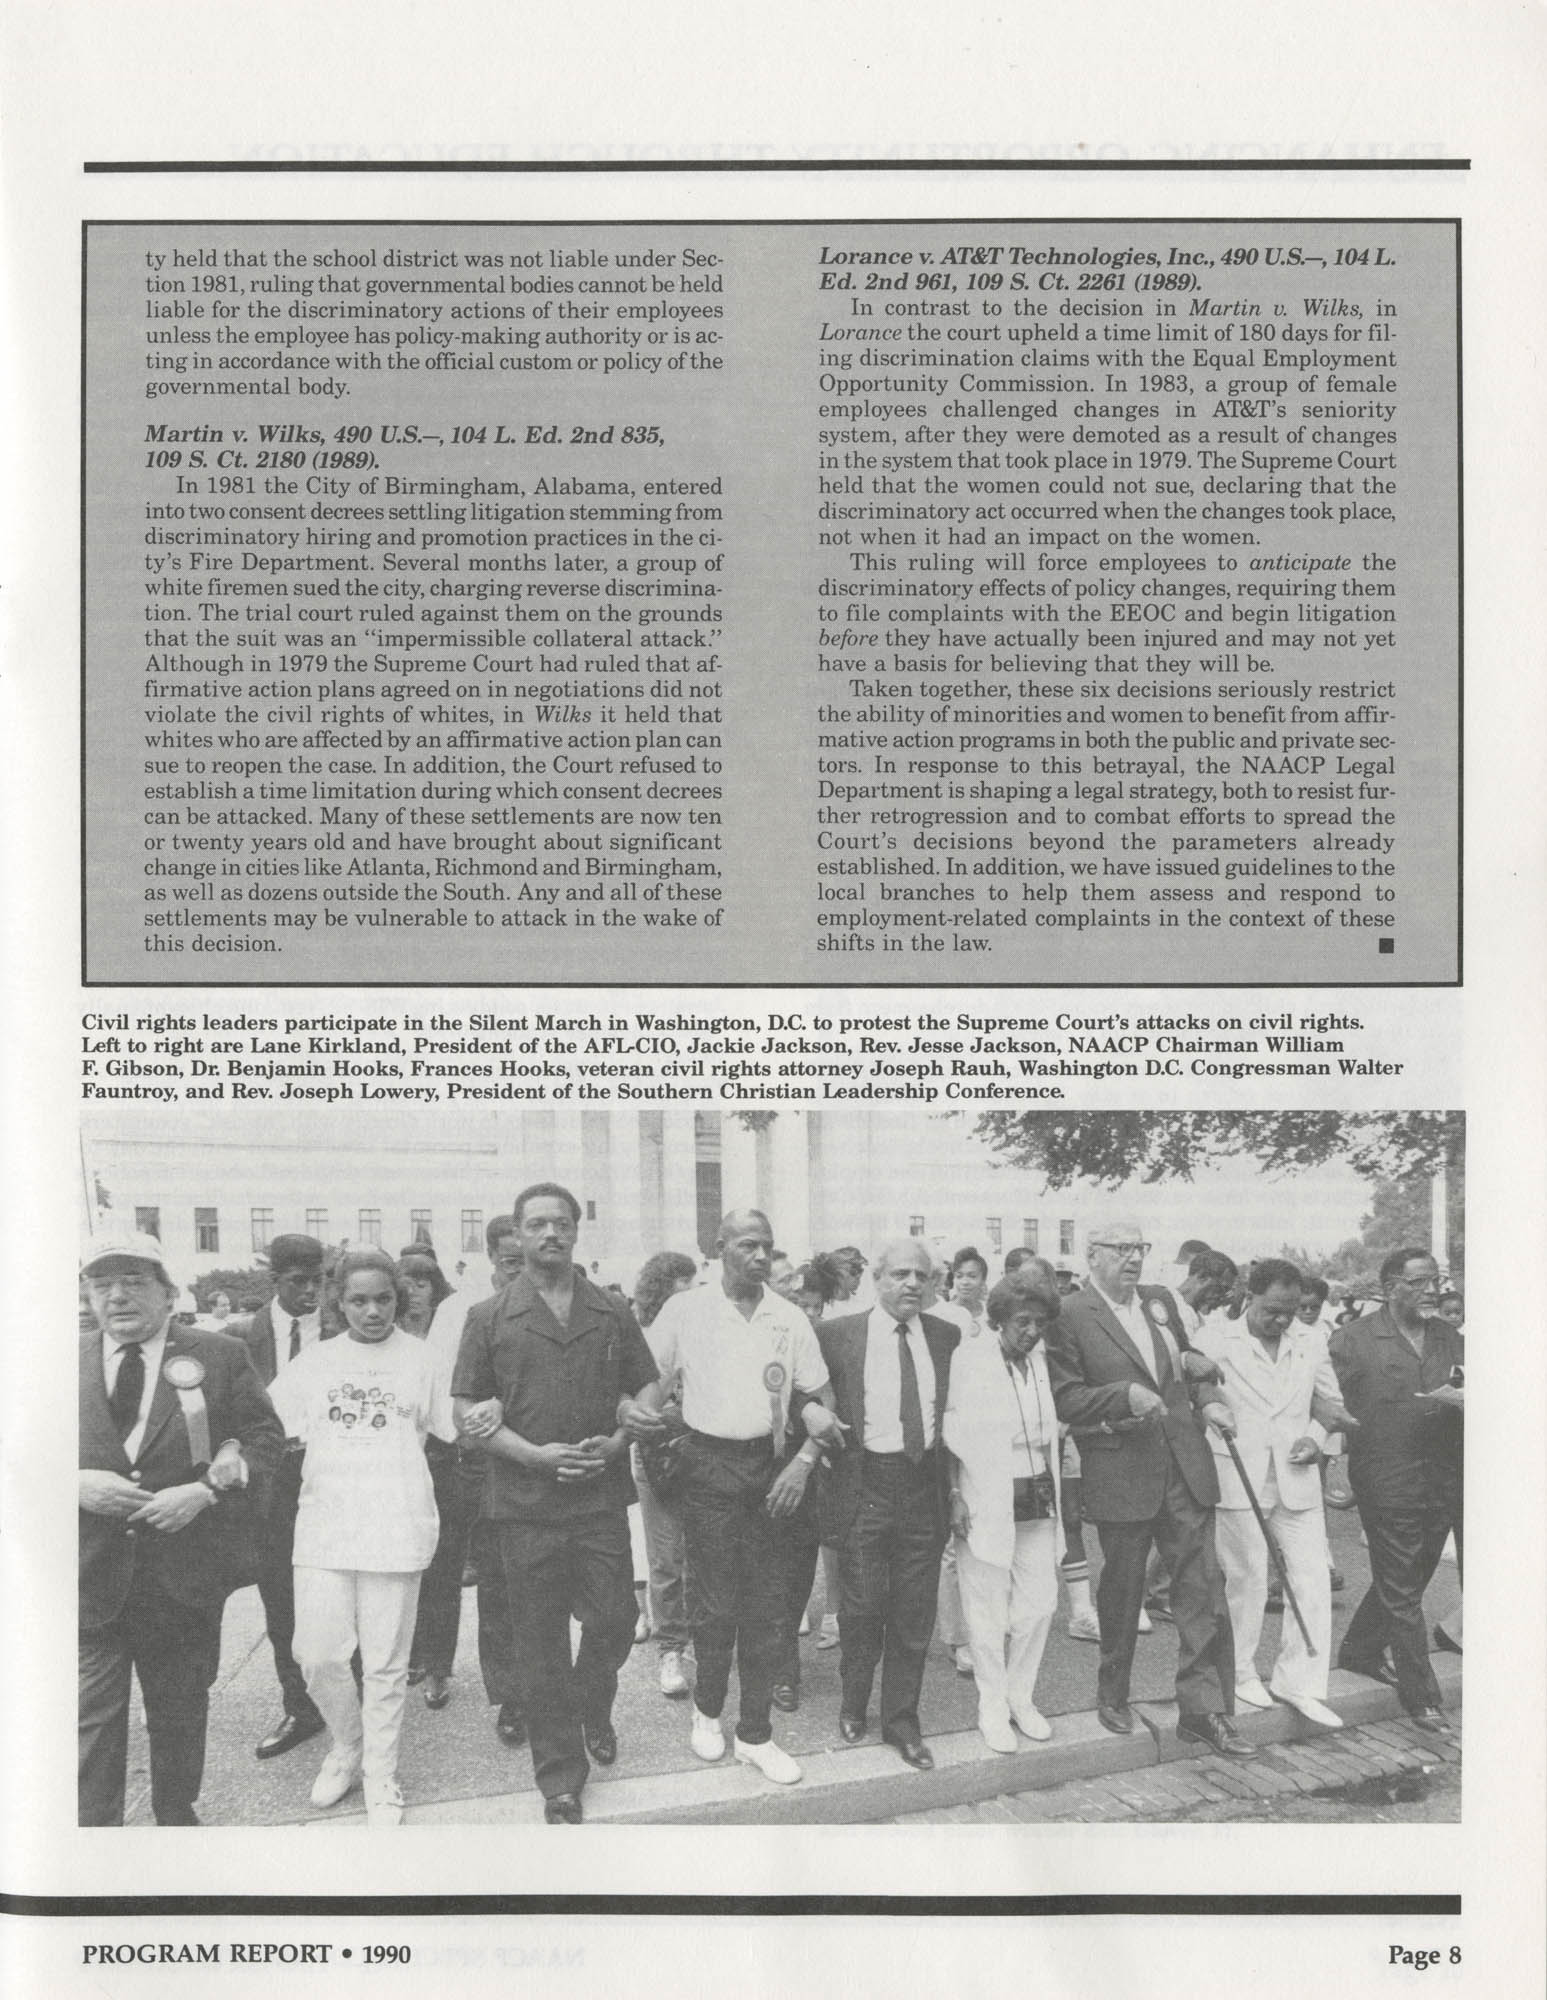 Program Report 1990, Special Contribution Fund, NAACP, Page 8